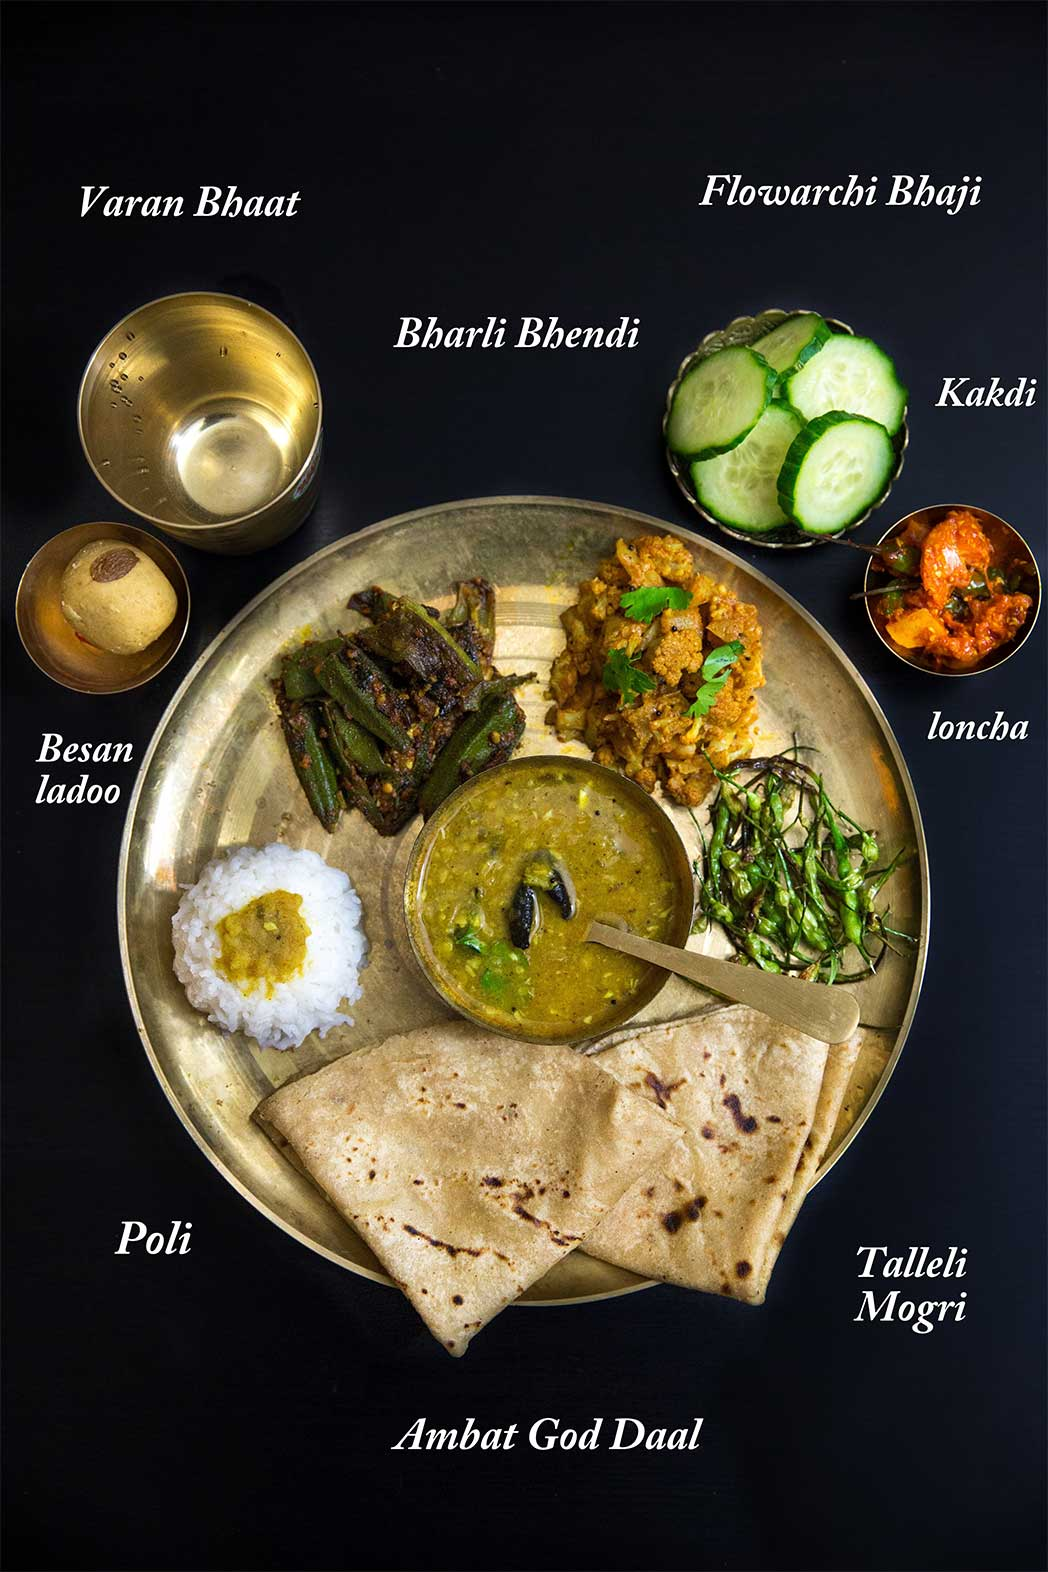 Indian food recipes, indian recipes, marathi thali, marathi recipes, varan bhat toop, indian recipes, top food blogs, food photography,